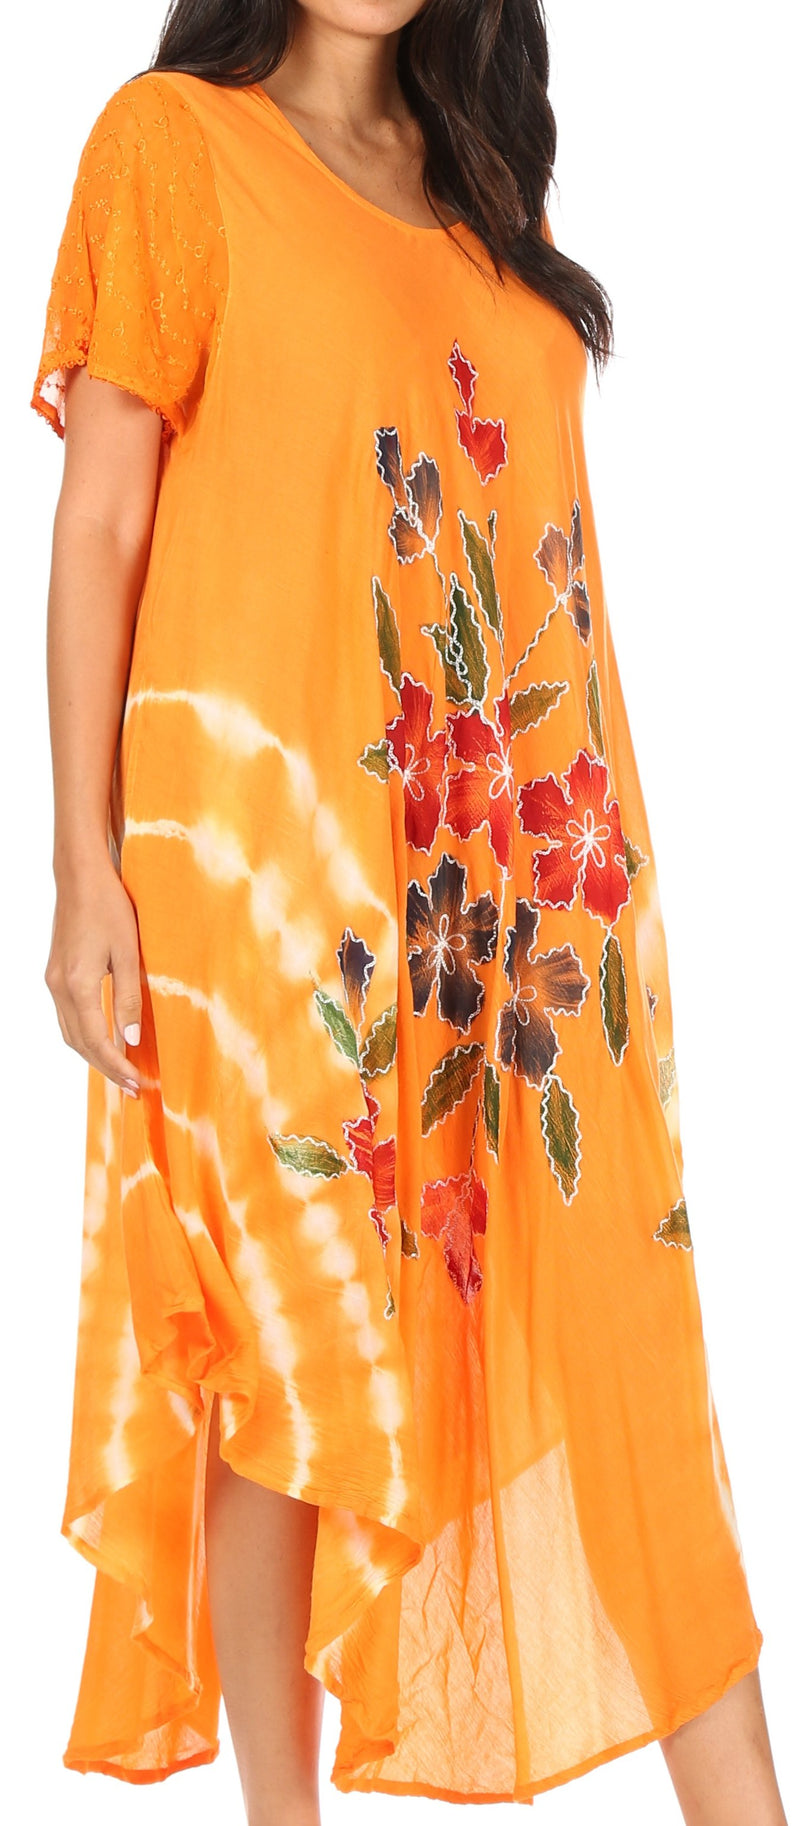 Sakkas Embroidered Painted Floral Cap Sleeve Cotton Dress